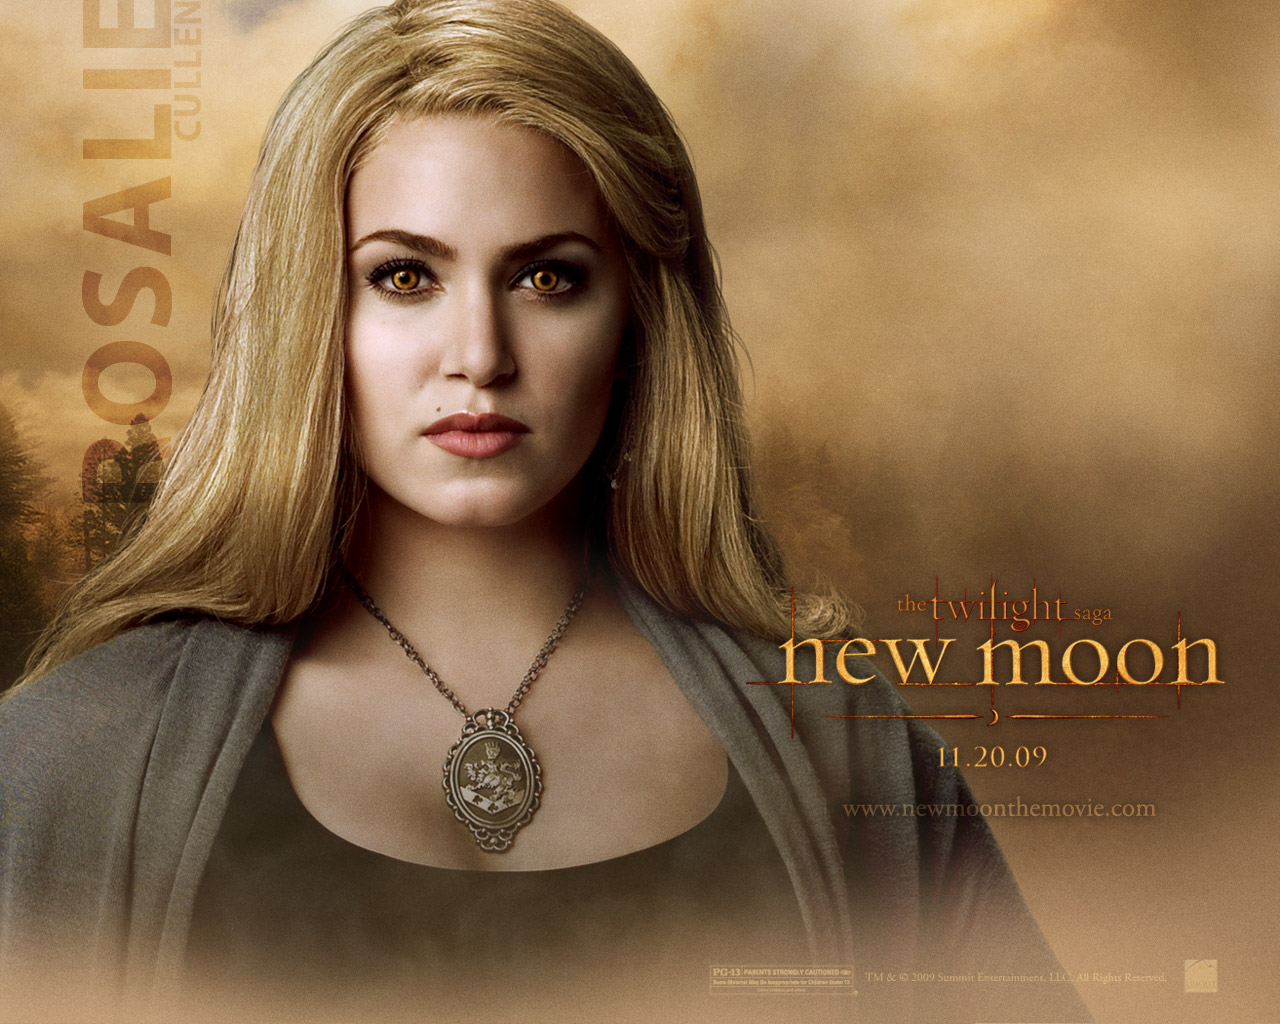 The New Moon Cast New MoonNew Moon Cast